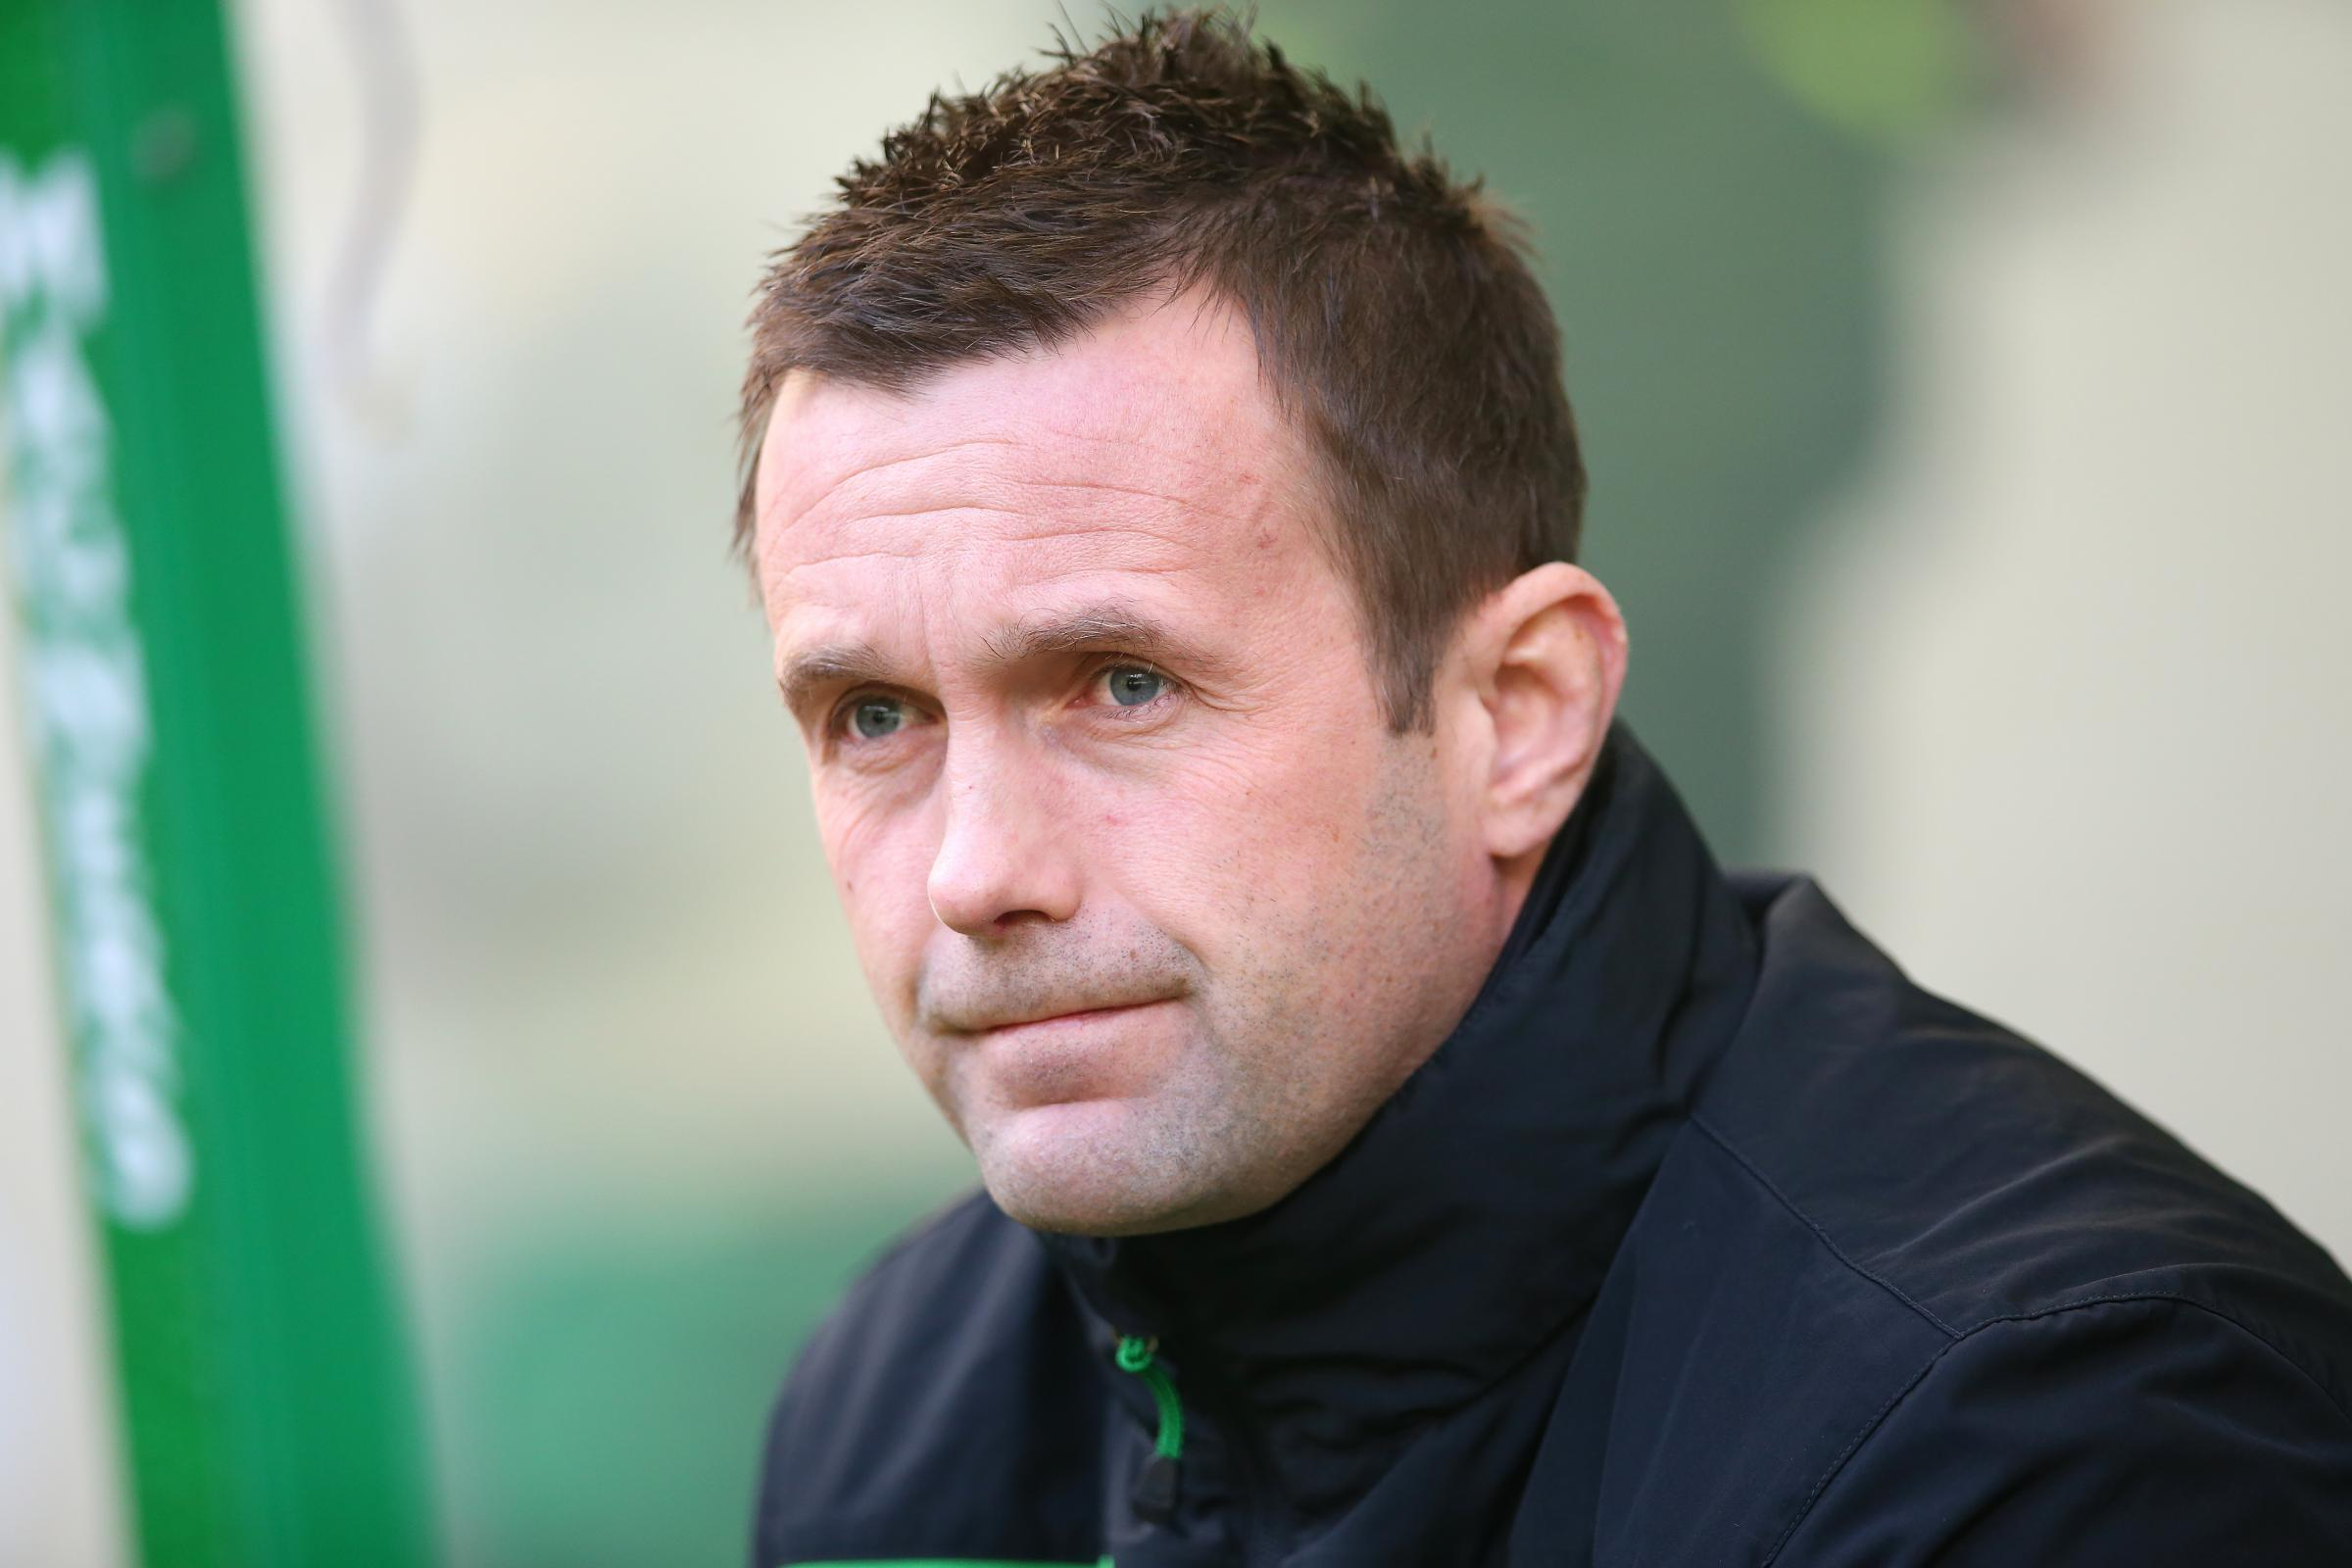 EXCLUSIVE: Ronny Deila on his new normal in Norway and the fear of failure which afflicted his time at Celtic